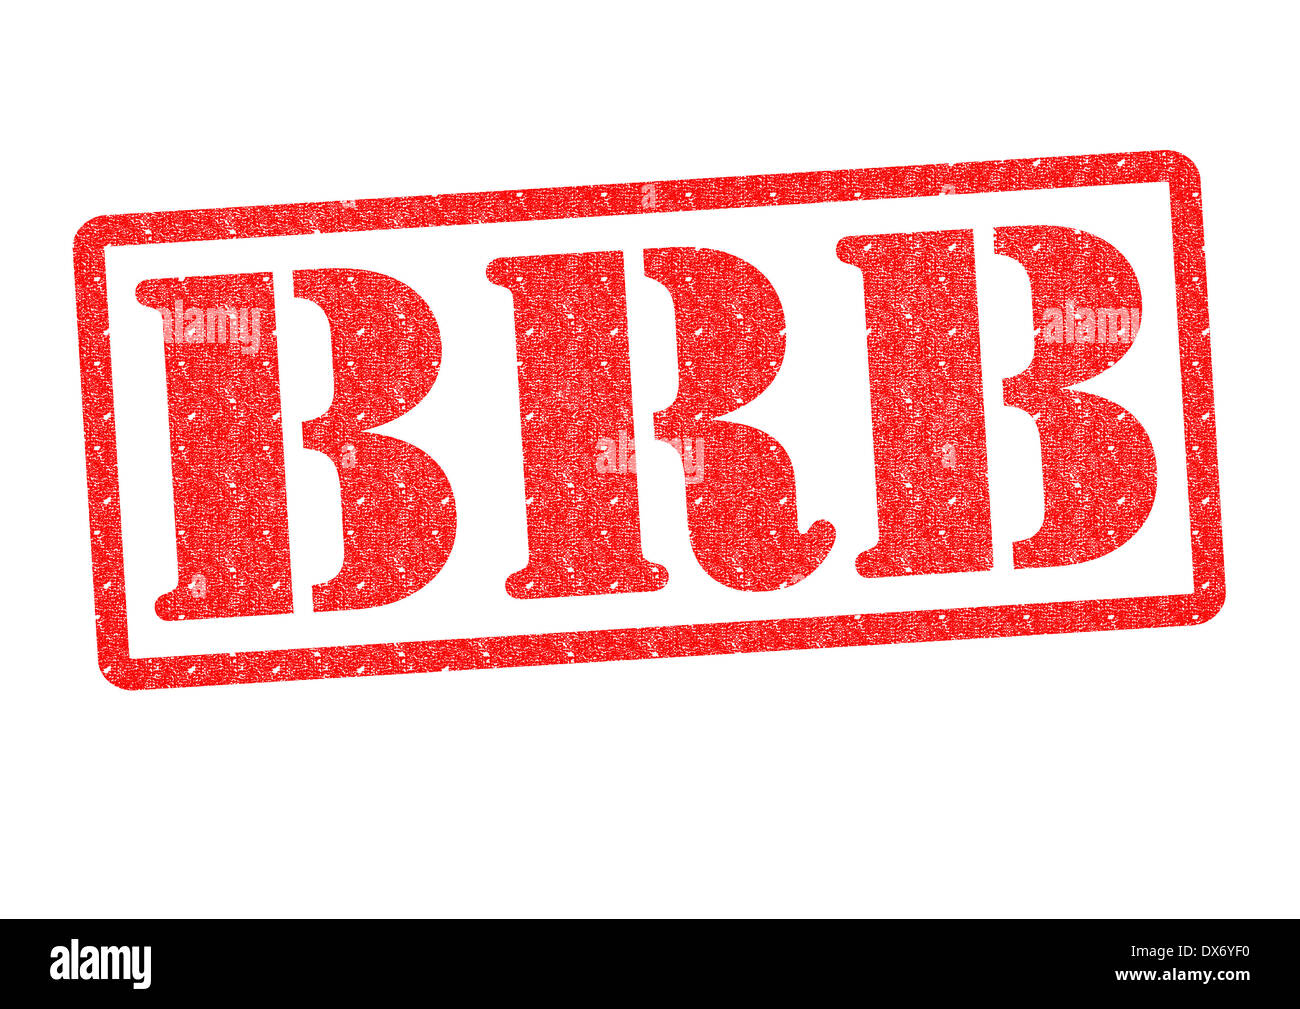 BRB rubber stamp over a white background. - Stock Image